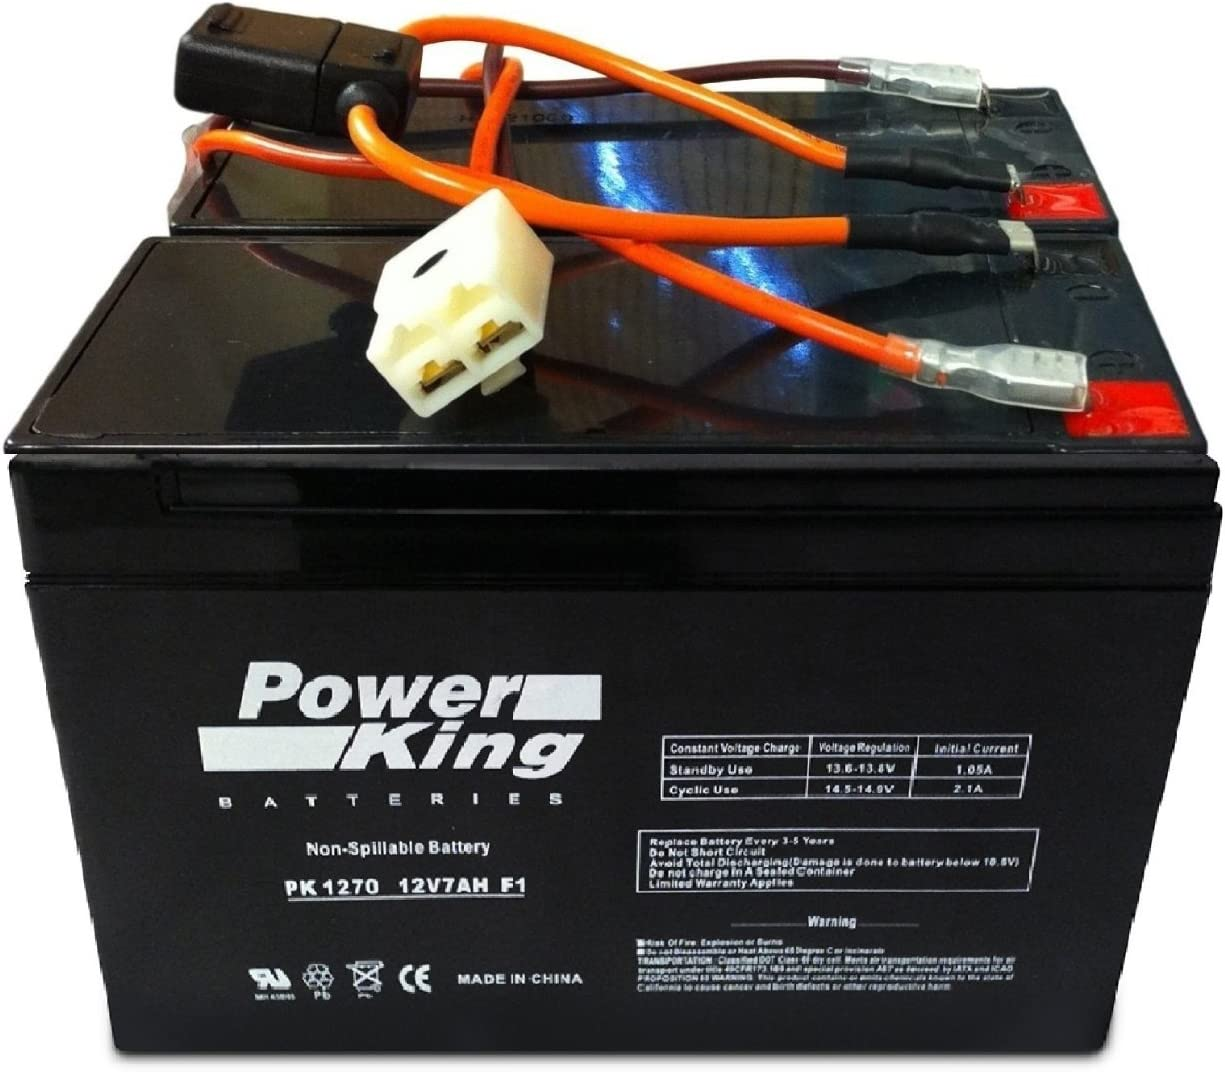 amazon.com: this is compatible with the razor 12 volt 7ah electric scooter  batteries set of 2 includes new wiring harness instructions included!  6-dw-7 beiter dc power brand high capacity: automotive  amazon.com